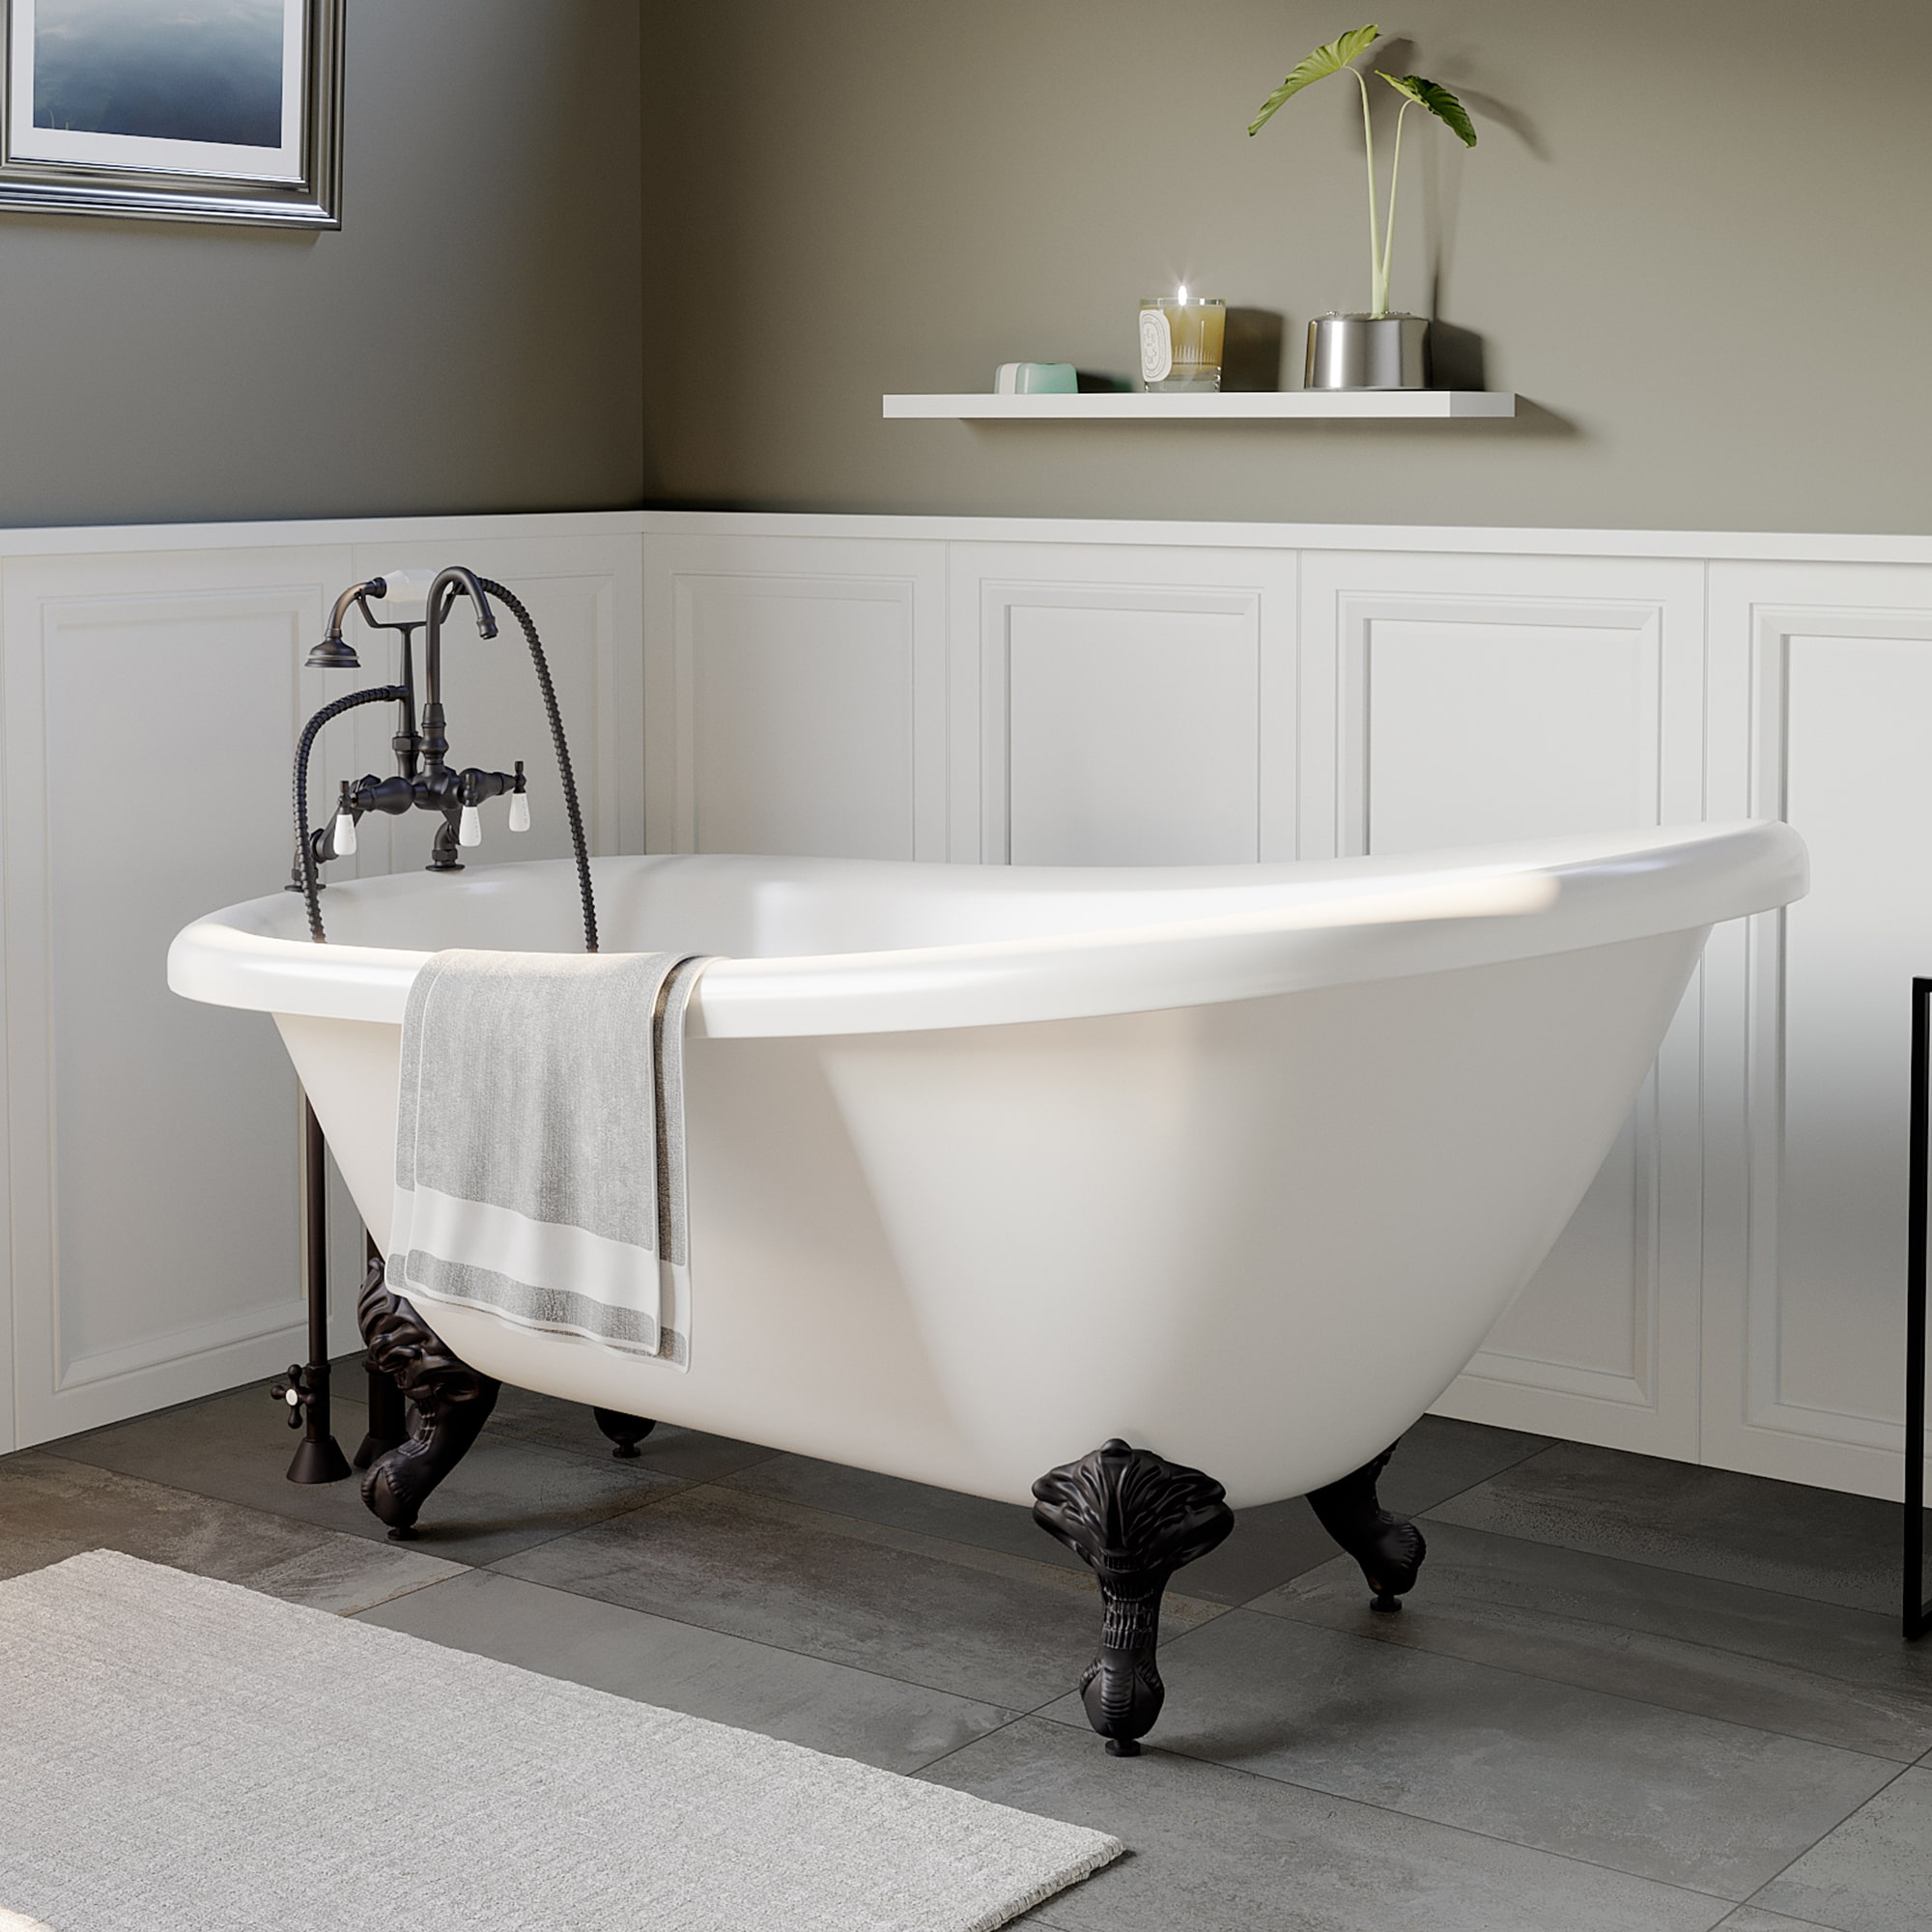 slipper tub, tub and faucet package, clawfoot tub,